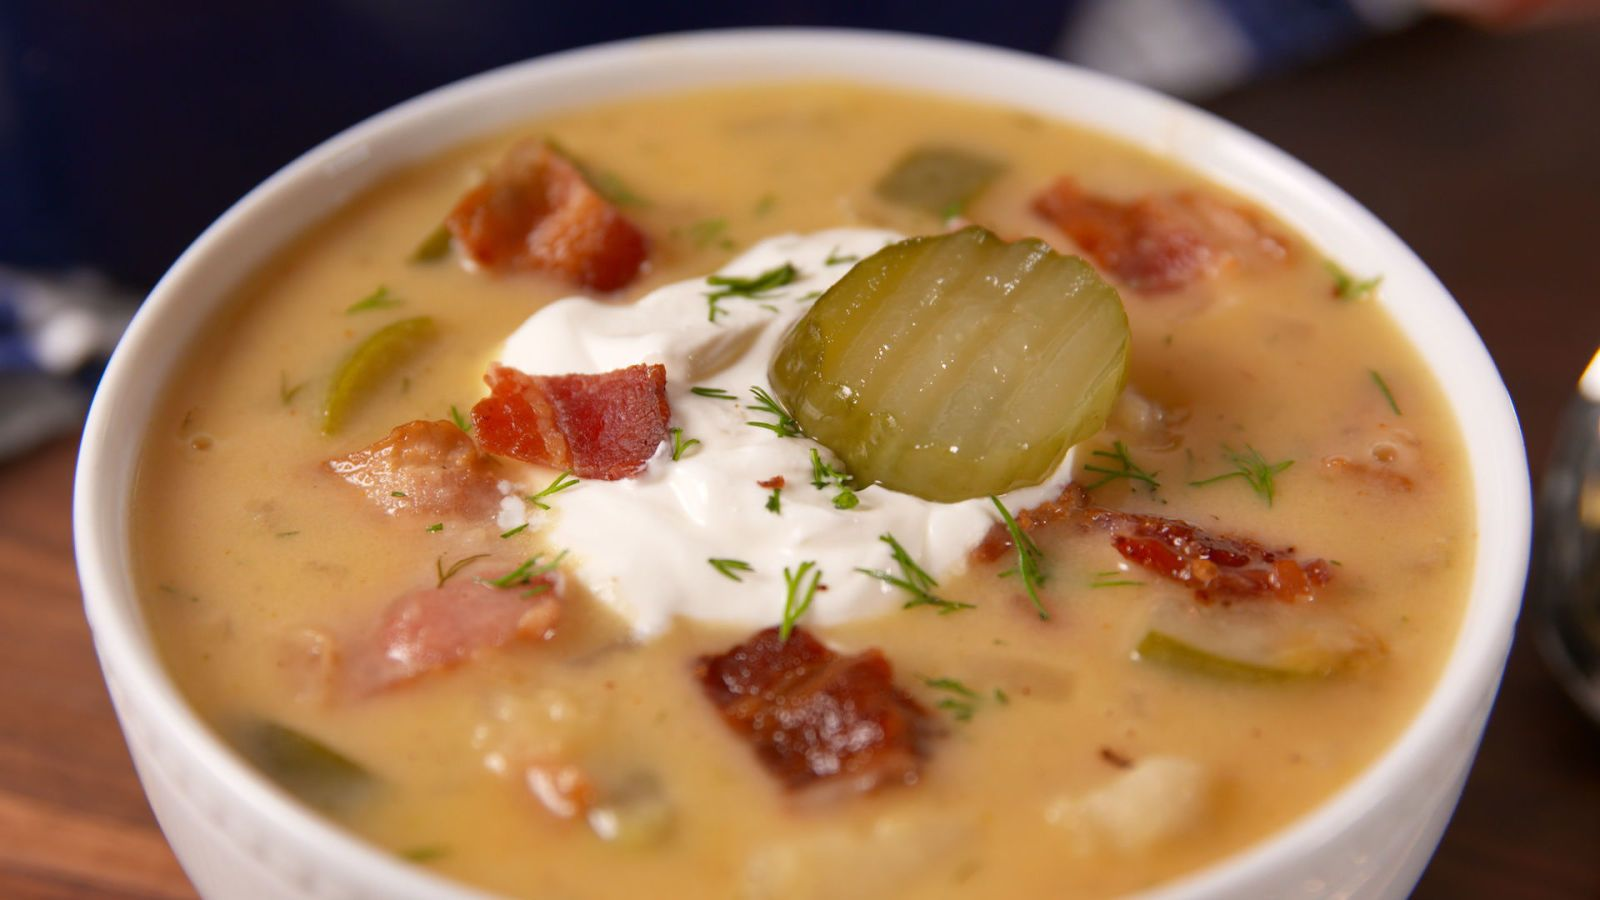 Dill Pickle Soup: The World's Strangest/Best Food Obsession?